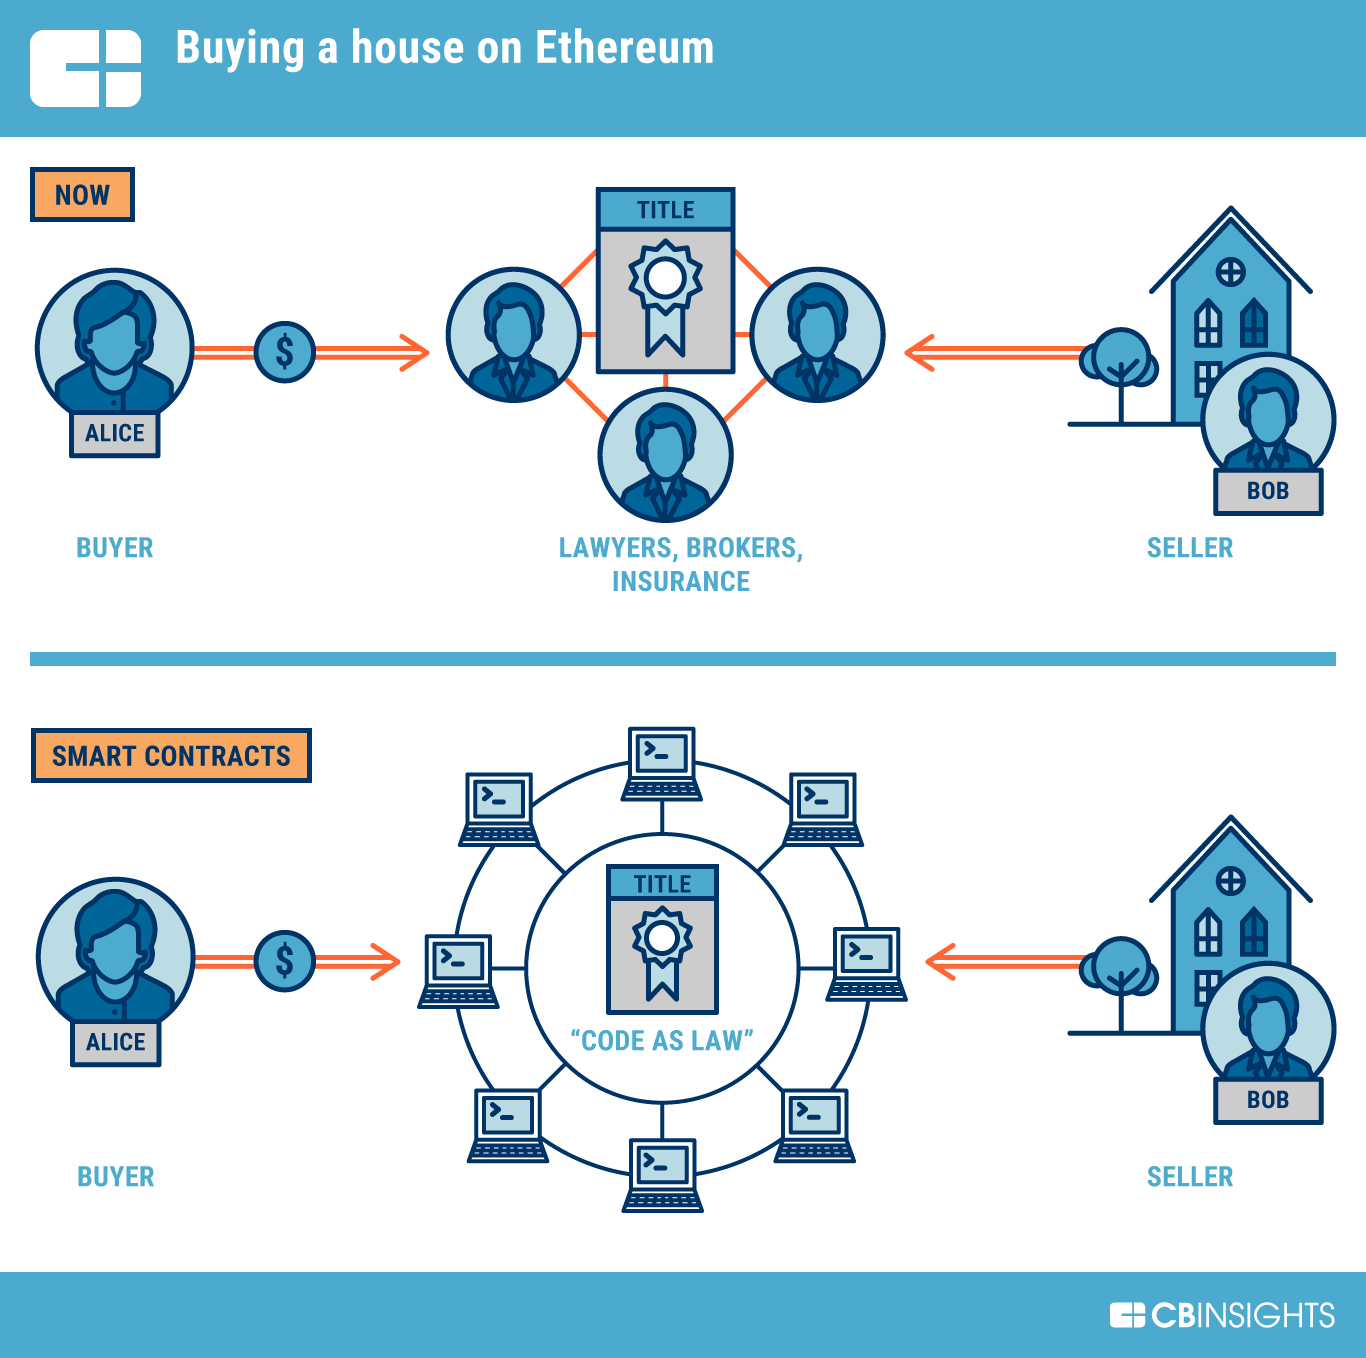 Ethereum is more than just a network of value exchange